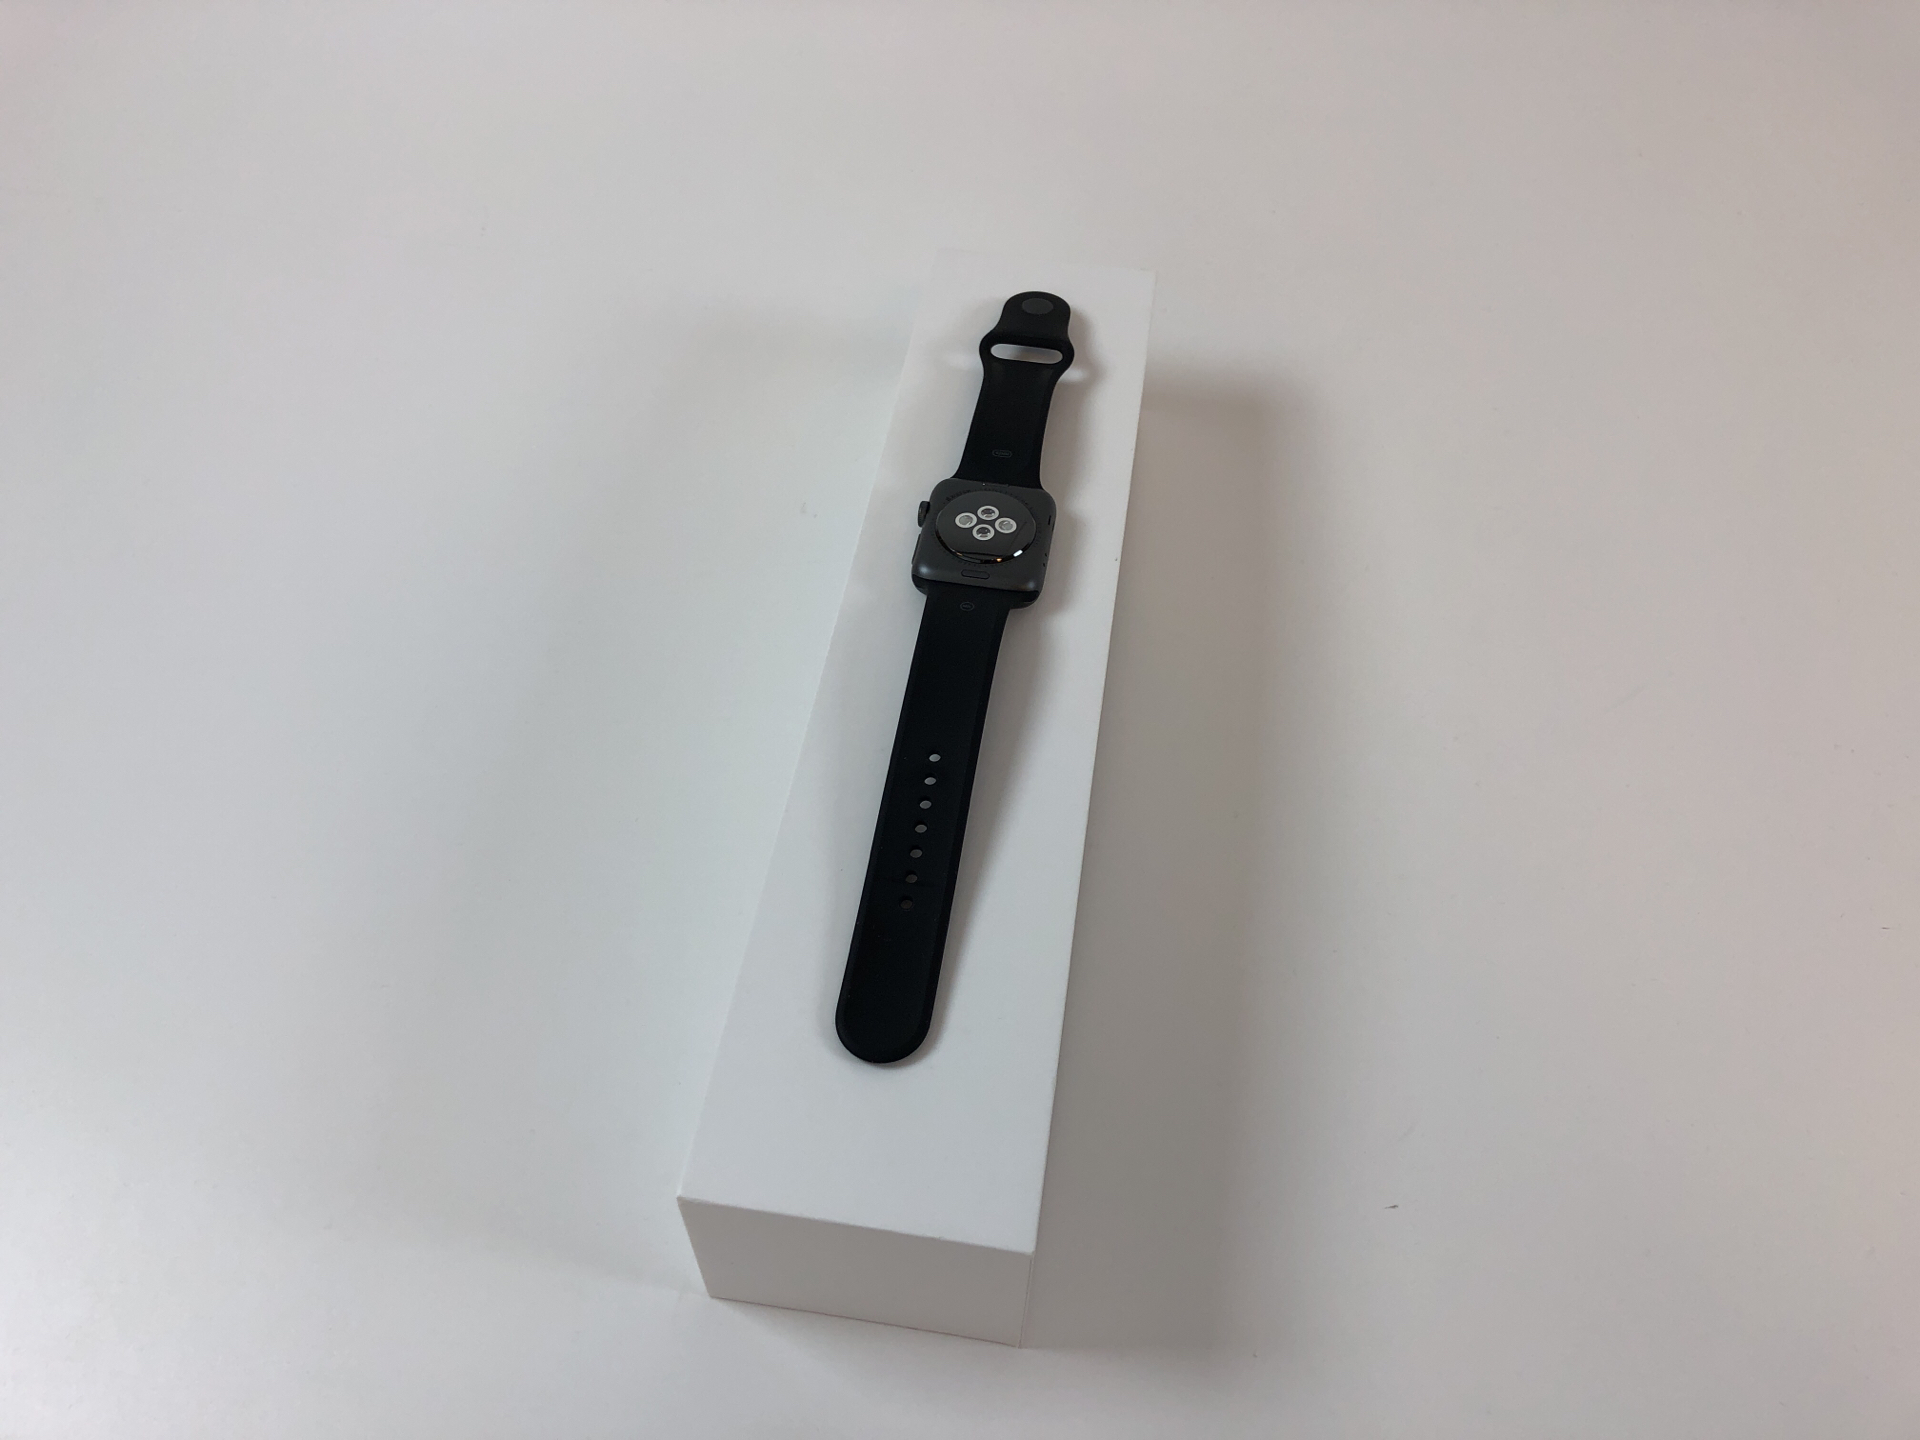 Watch Series 2 Aluminum (42mm), Space Gray, Black Sport Band, bild 2